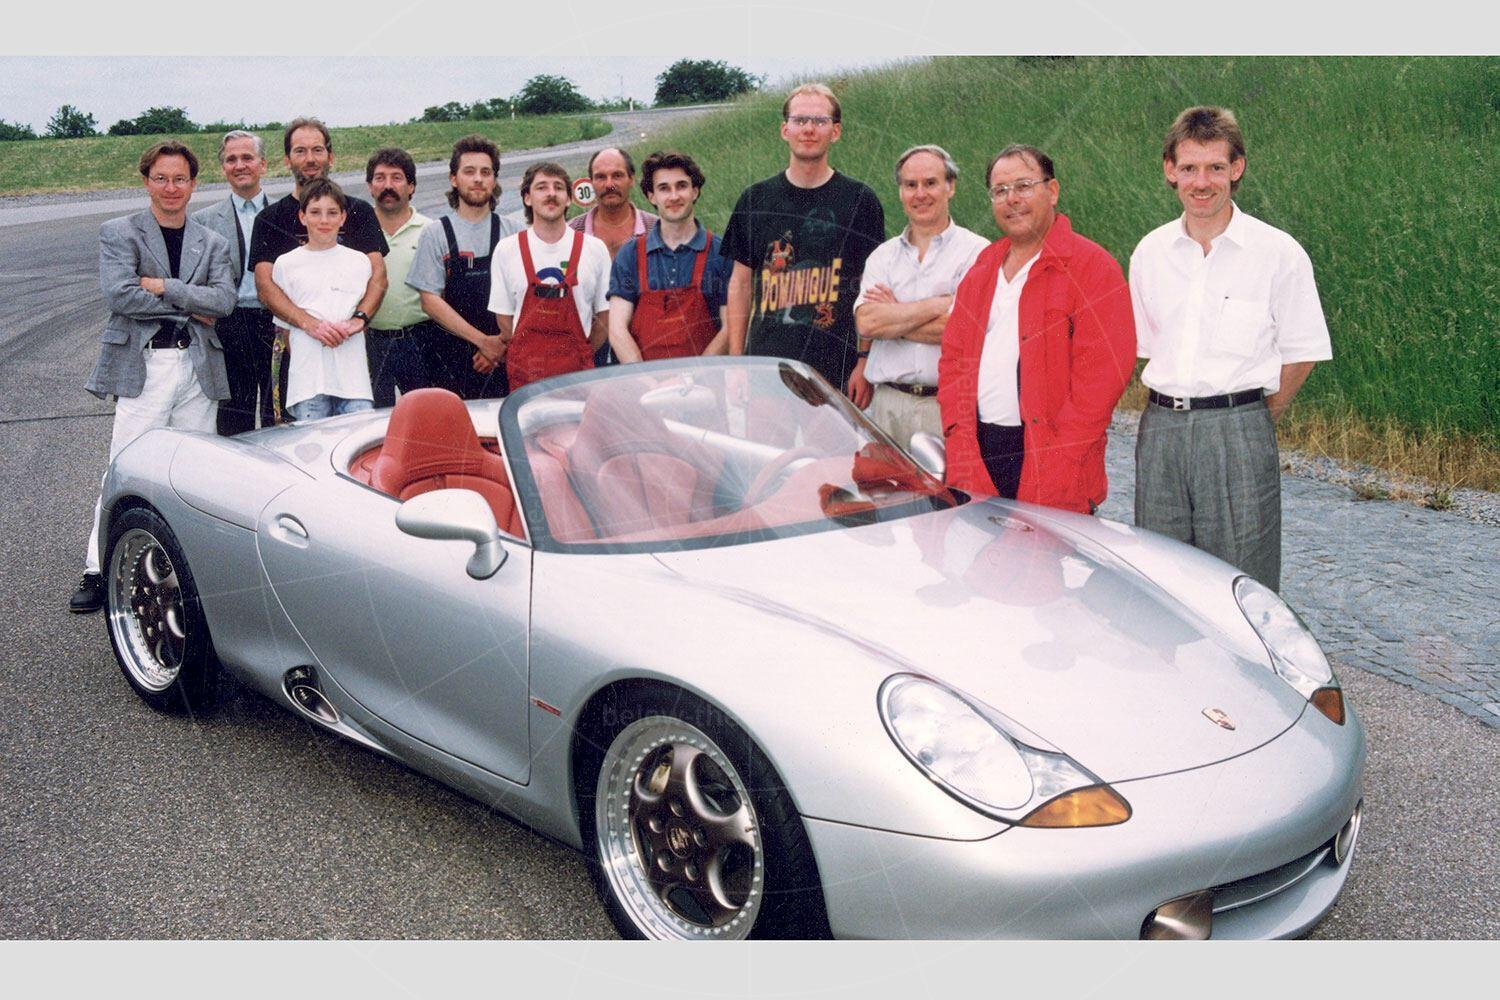 The engineering team behind the Porsche Boxster concept Pic: Porsche | The engineering team behind the Porsche Boxster concept